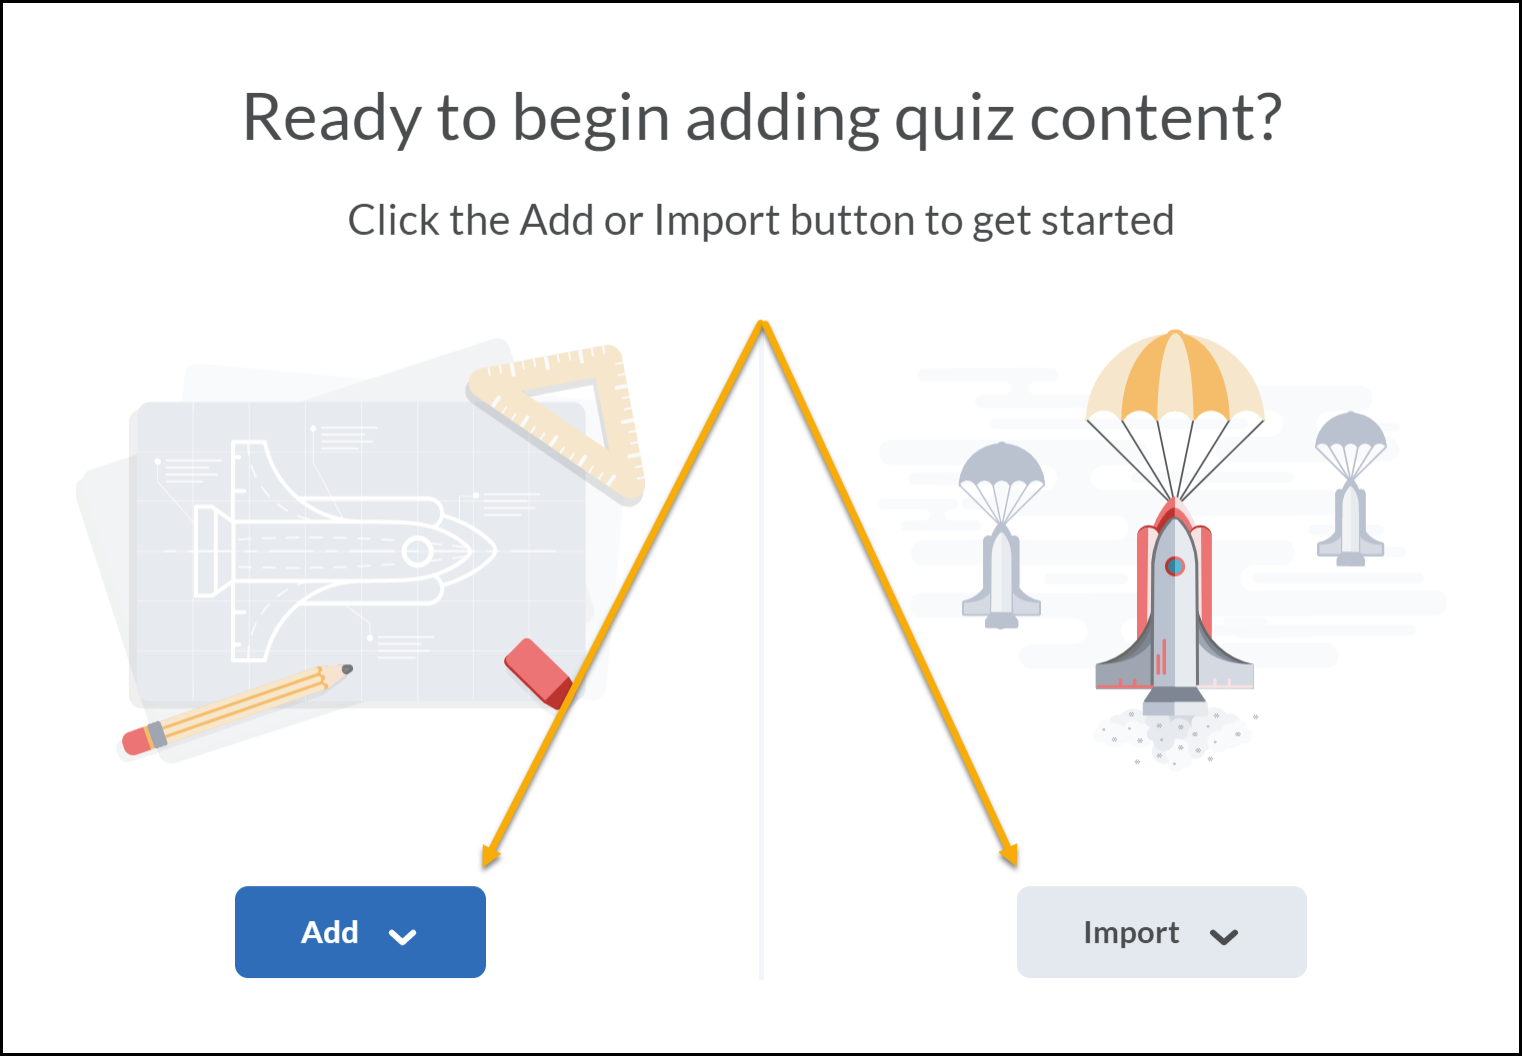 Ready to begin adding quiz content? Arrows pointing to Add or Import.